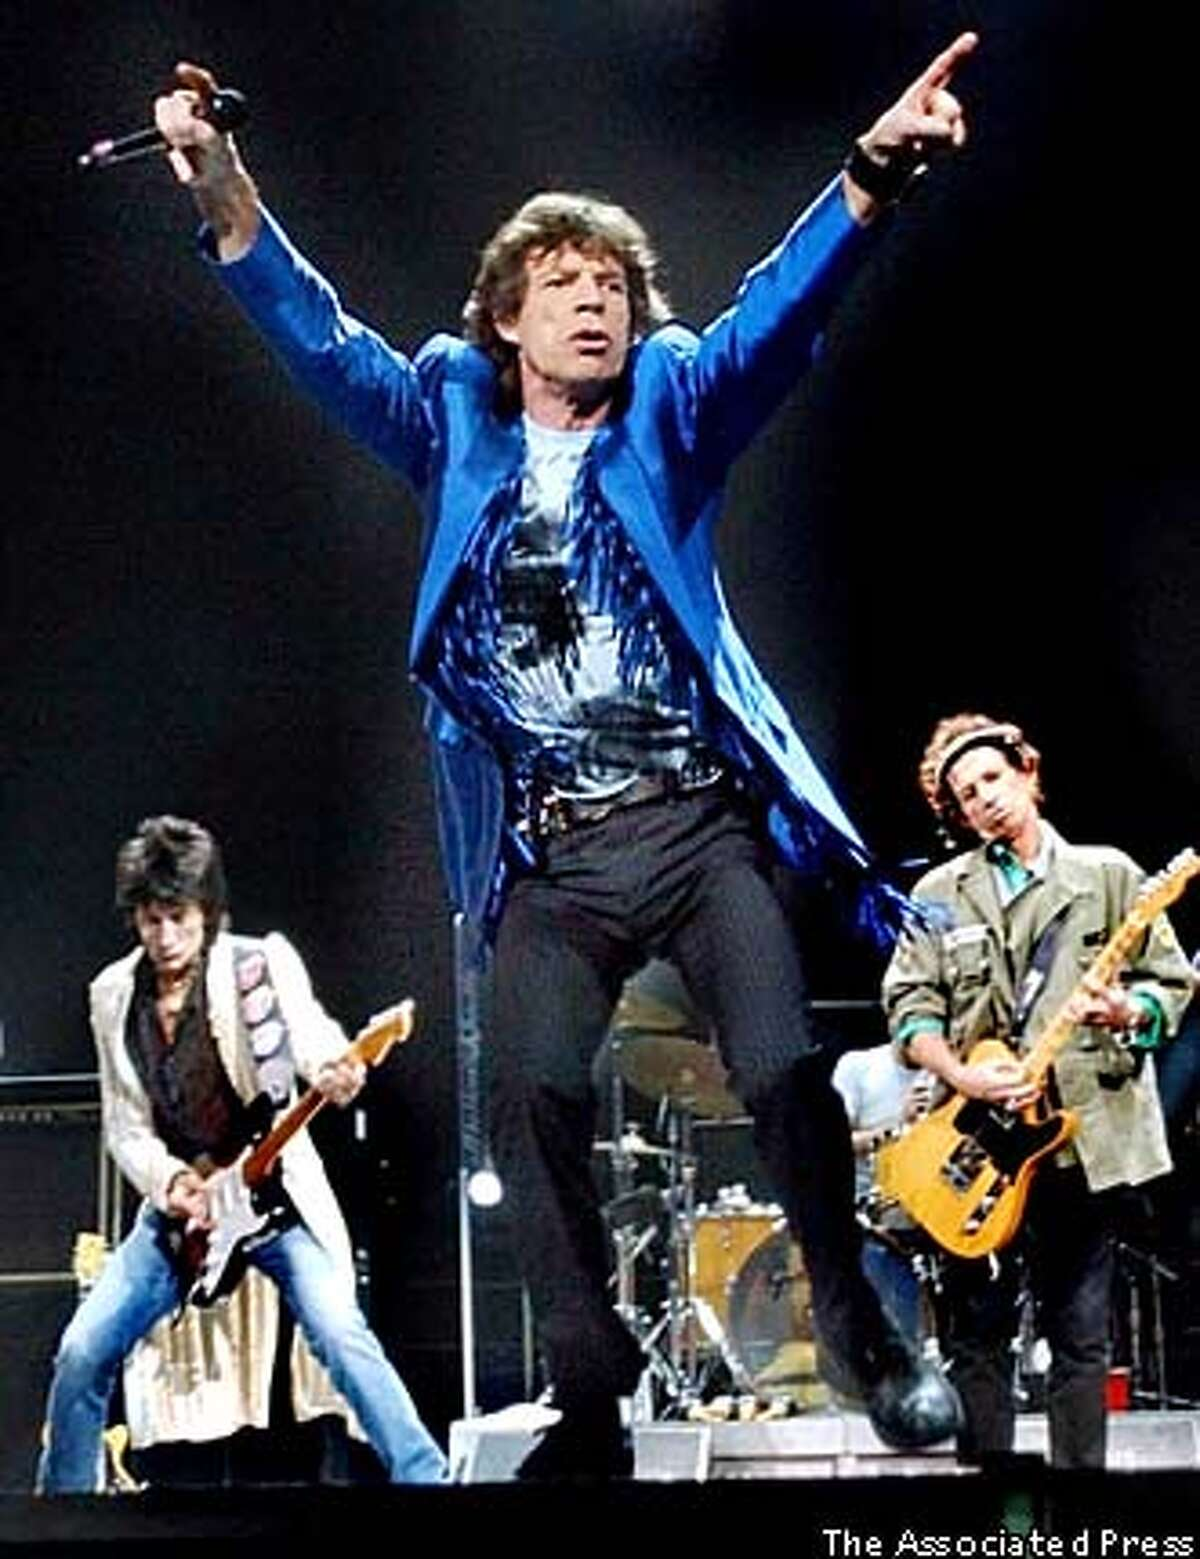 The Rolling Stones, (left to right) guitarist Ron Wood, front man Mick Jagger and guitarist Keith Richards, performed Oct. 22 in Sunrise, Fla. South Florida Sun-Sentinel photo by Robert Duyos via Associated Press